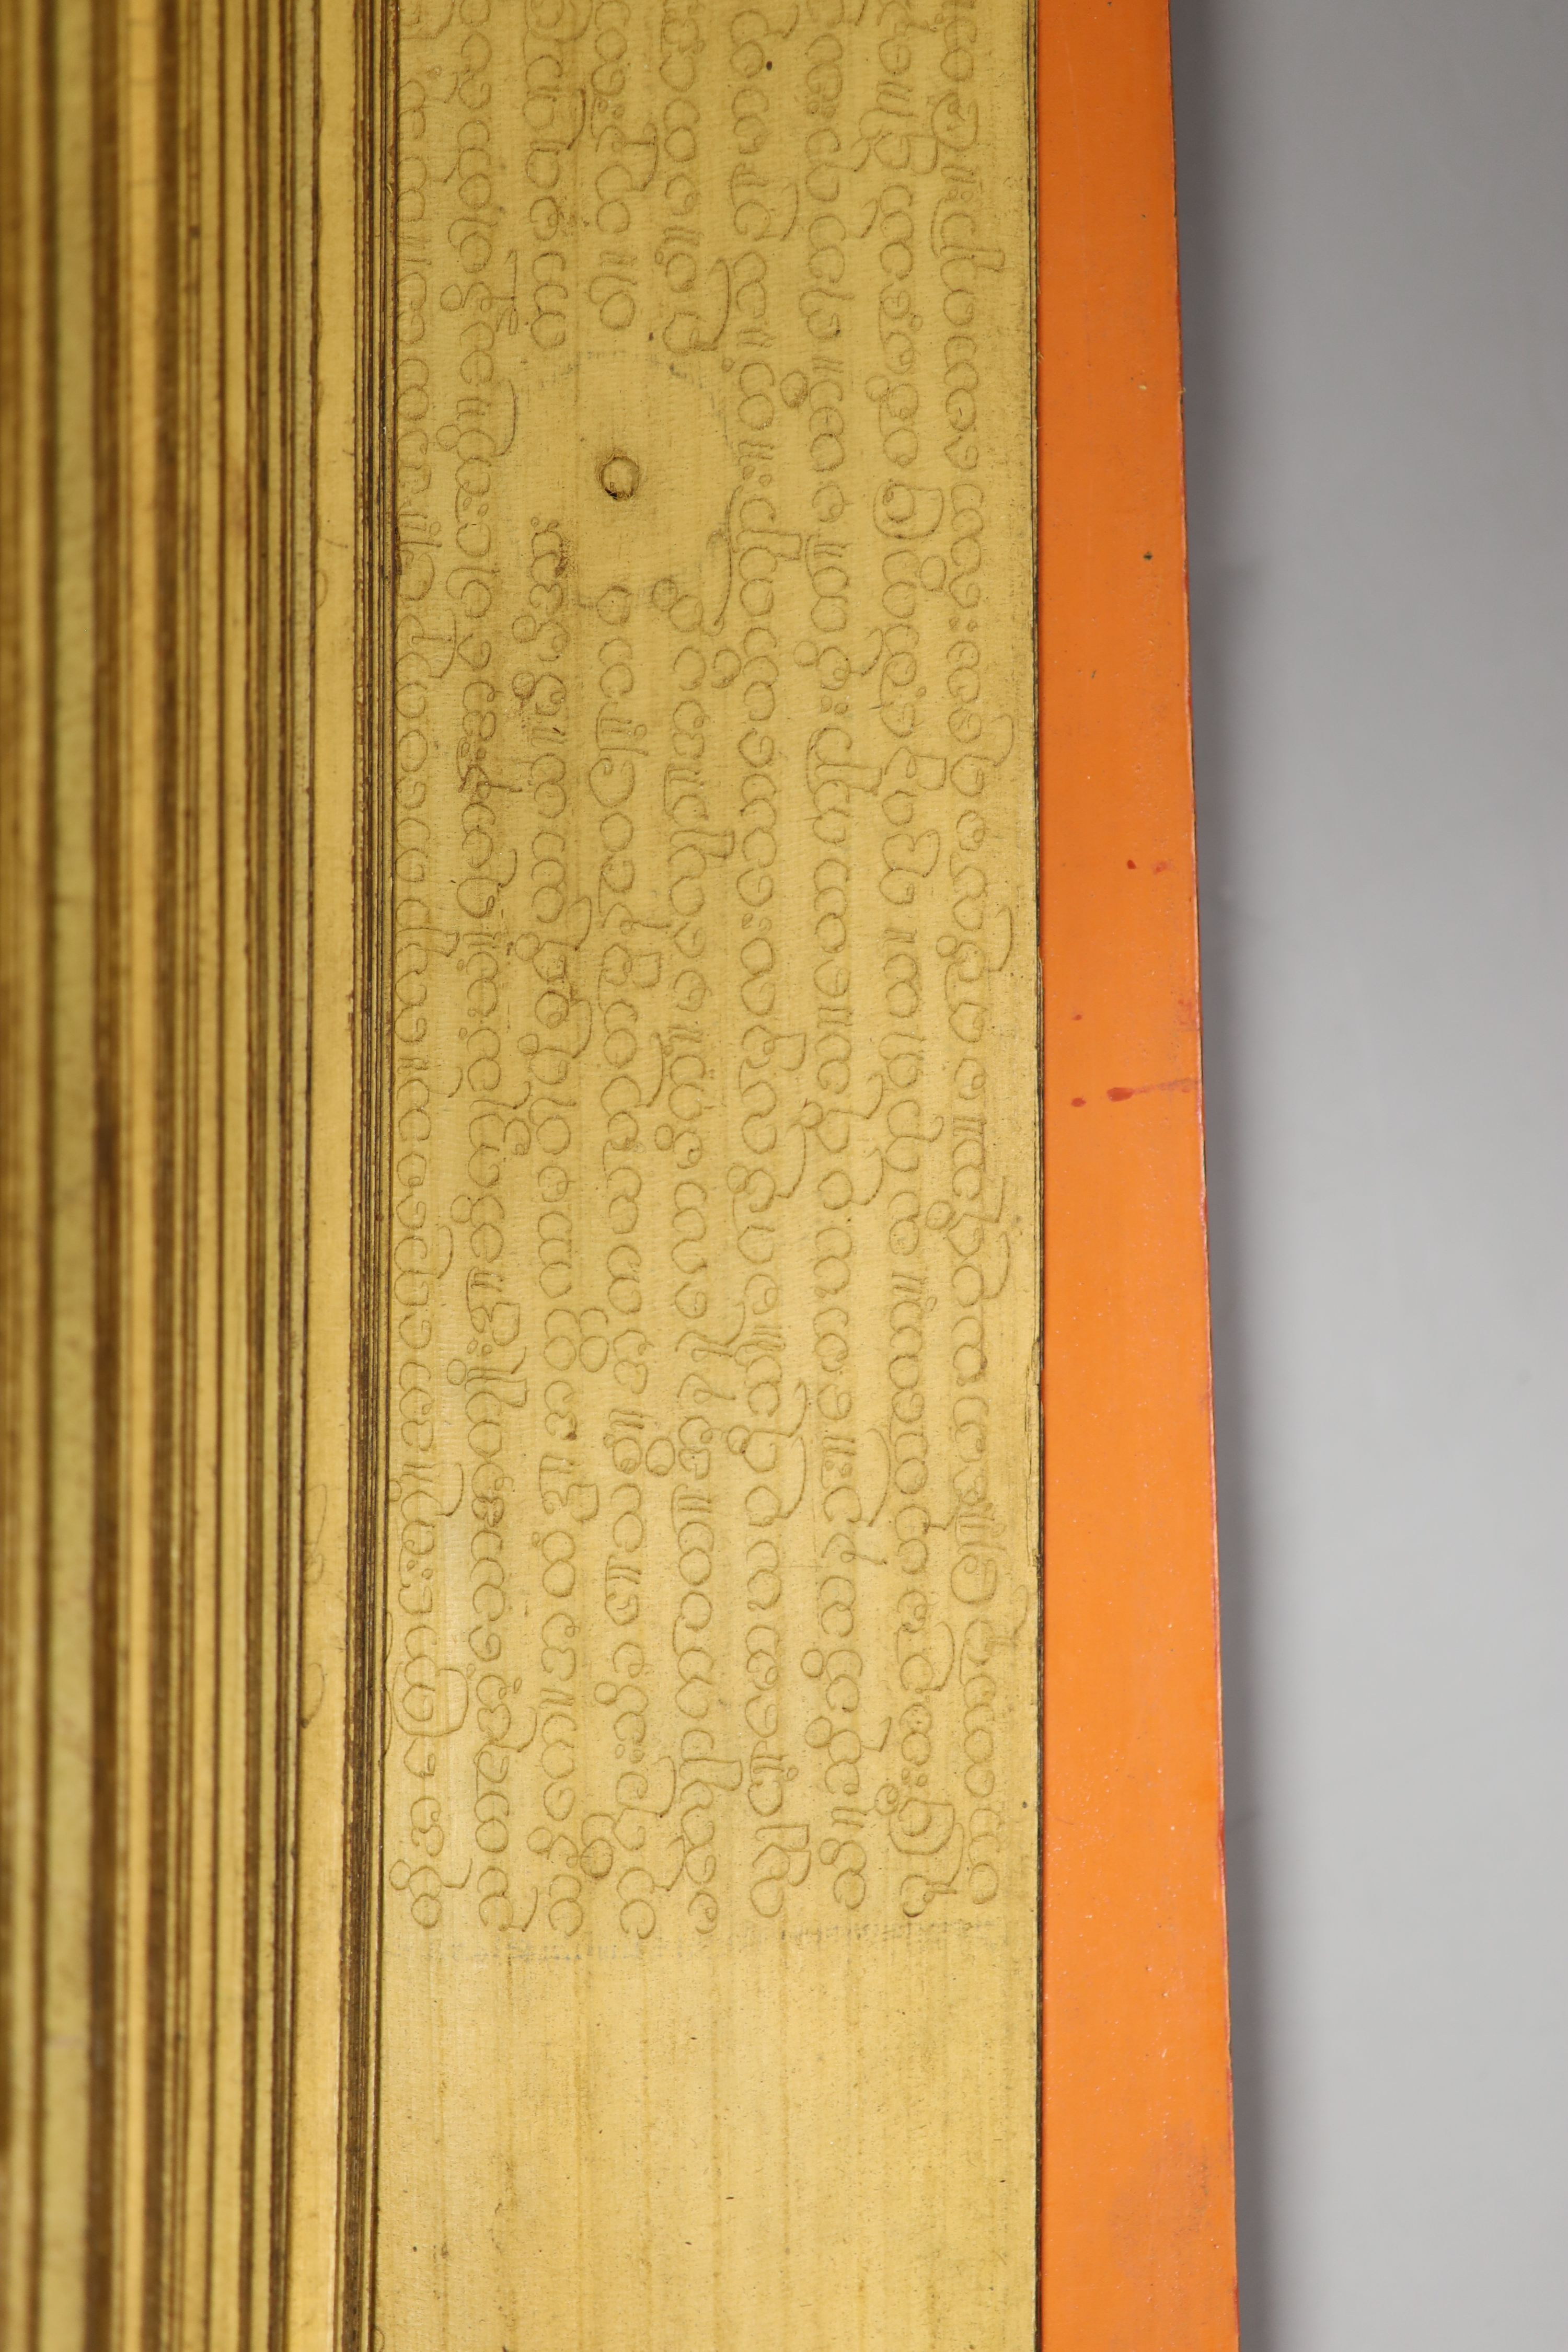 Three 19th century Burmese lacquered Sutra manuscripts, each written in Pali on bamboo leaves, gold - Image 5 of 5